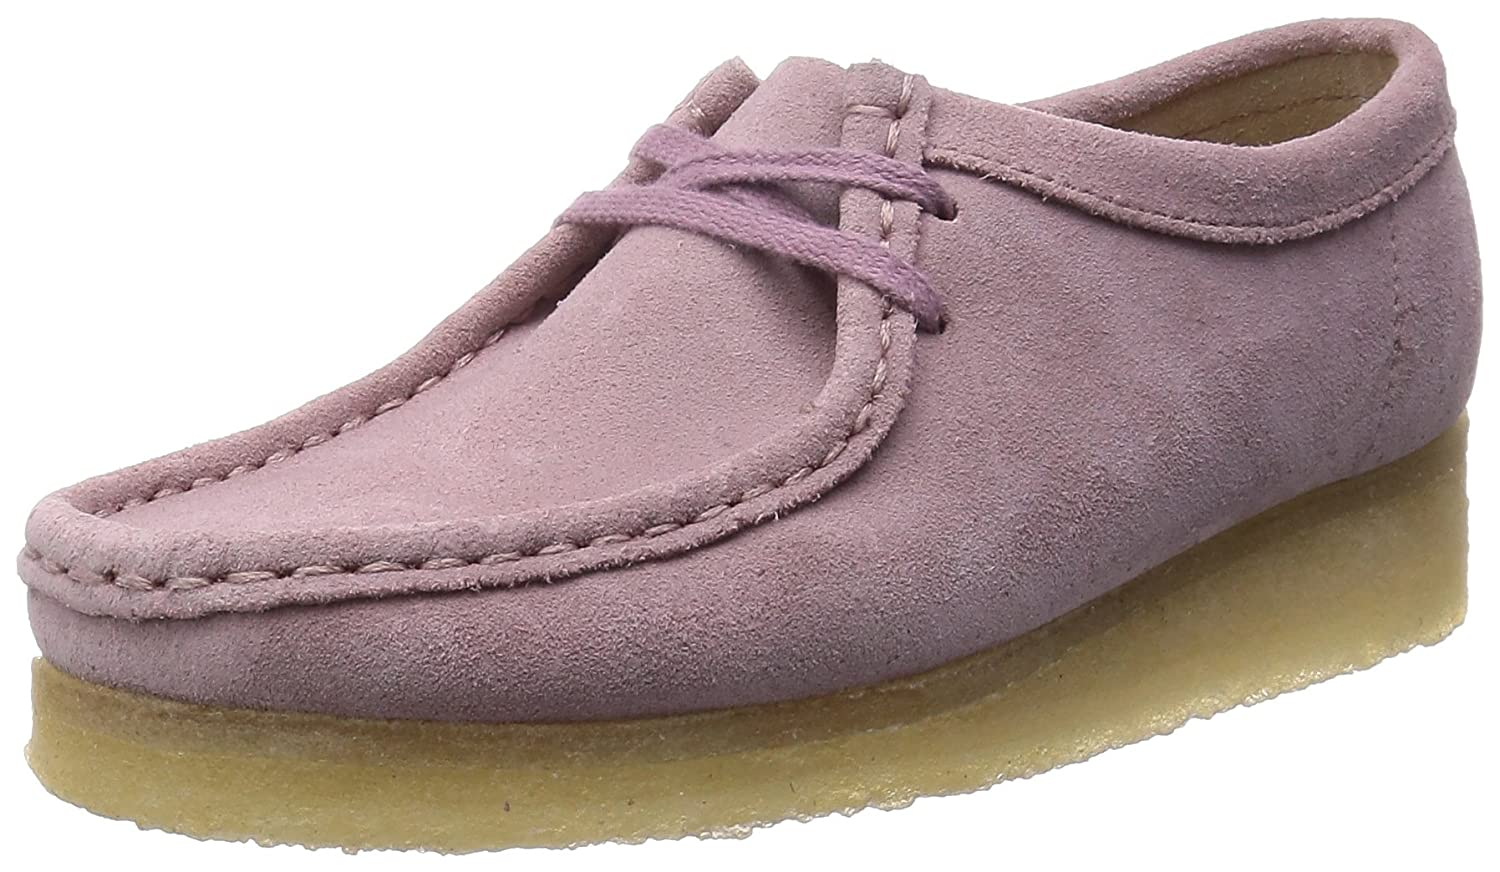 dee198e7 Clarks Wallabee, Women's Derby